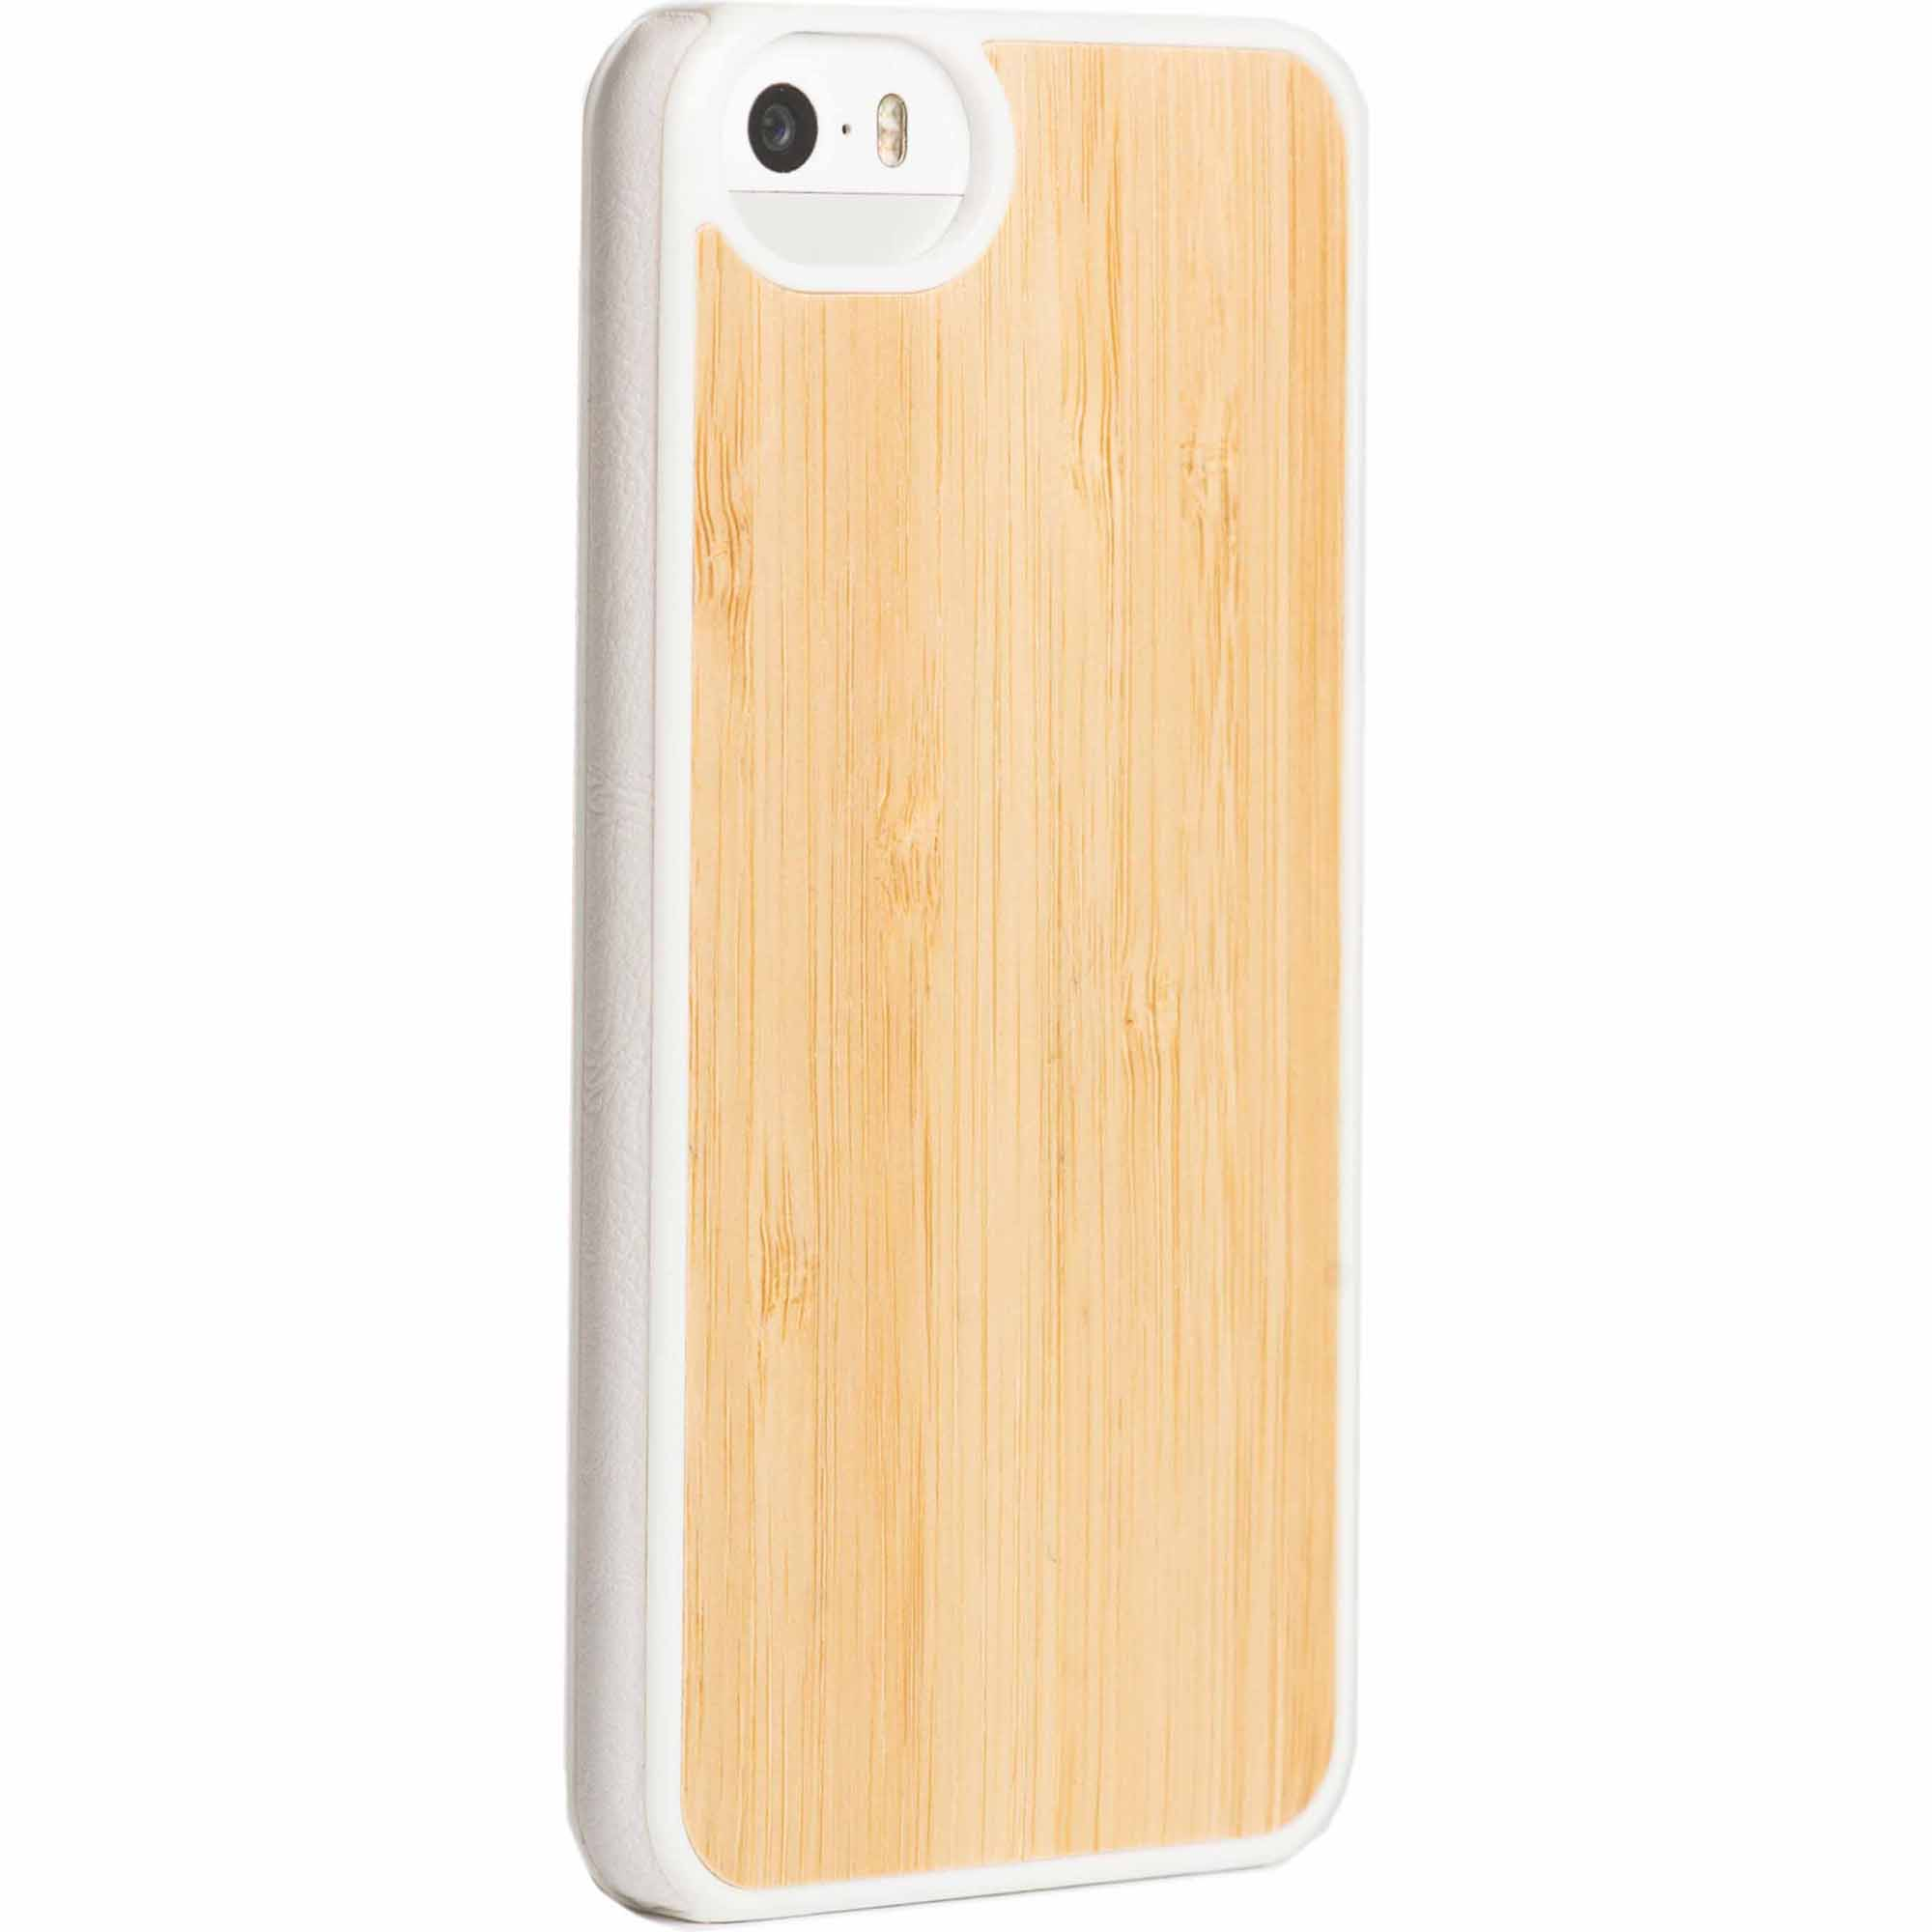 Agent 18 Inlay Case for iPhone 5/5s - Bamboo